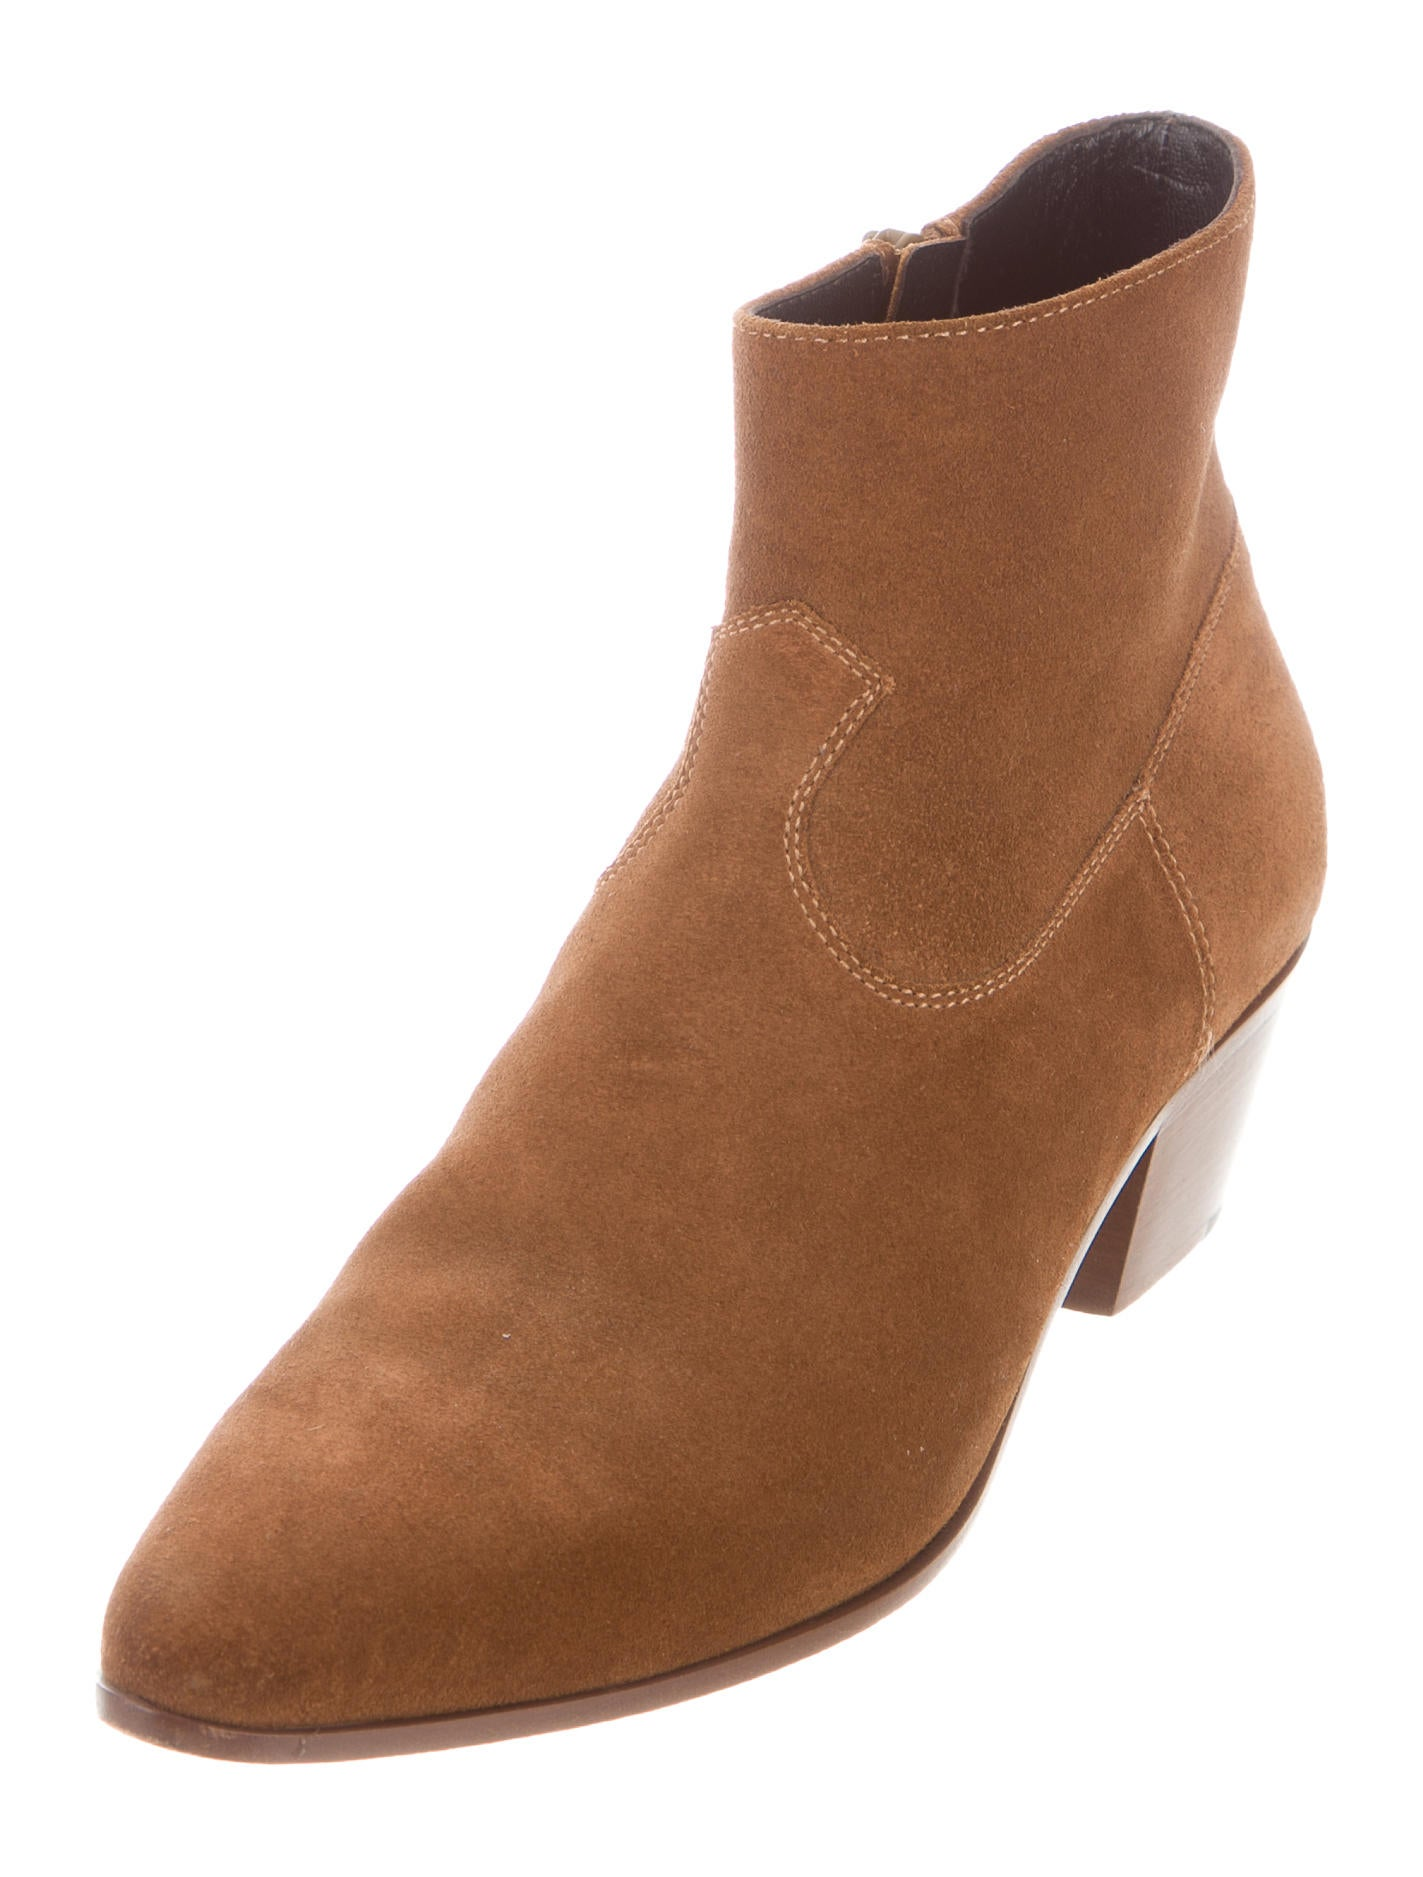 laurent suede ankle boots shoes snt36552 the